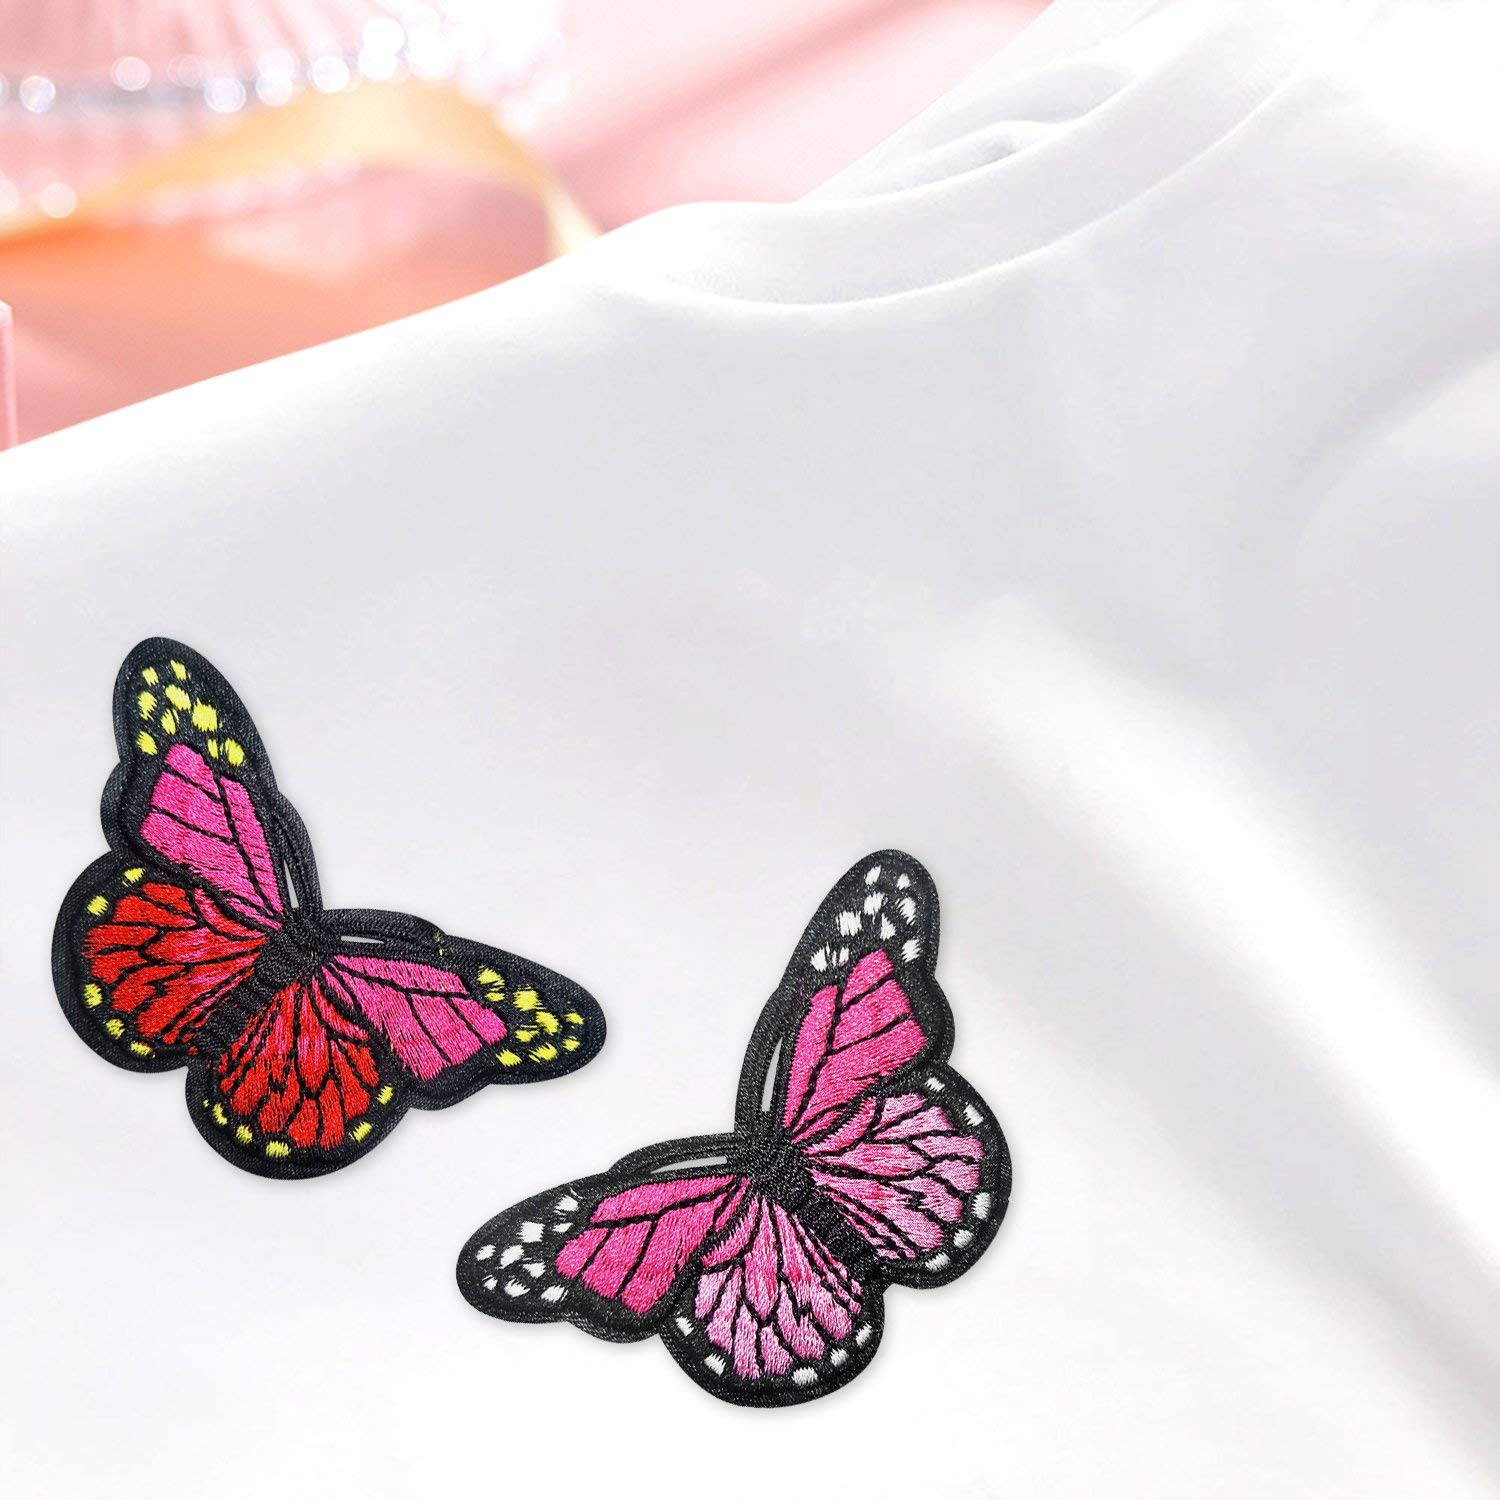 Jeans Bags Budicool Flowers Butterfly Iron on Patches Embroidery Applique Patches for Arts Crafts DIY Decor Jackets Pack of 34pieces Clothing